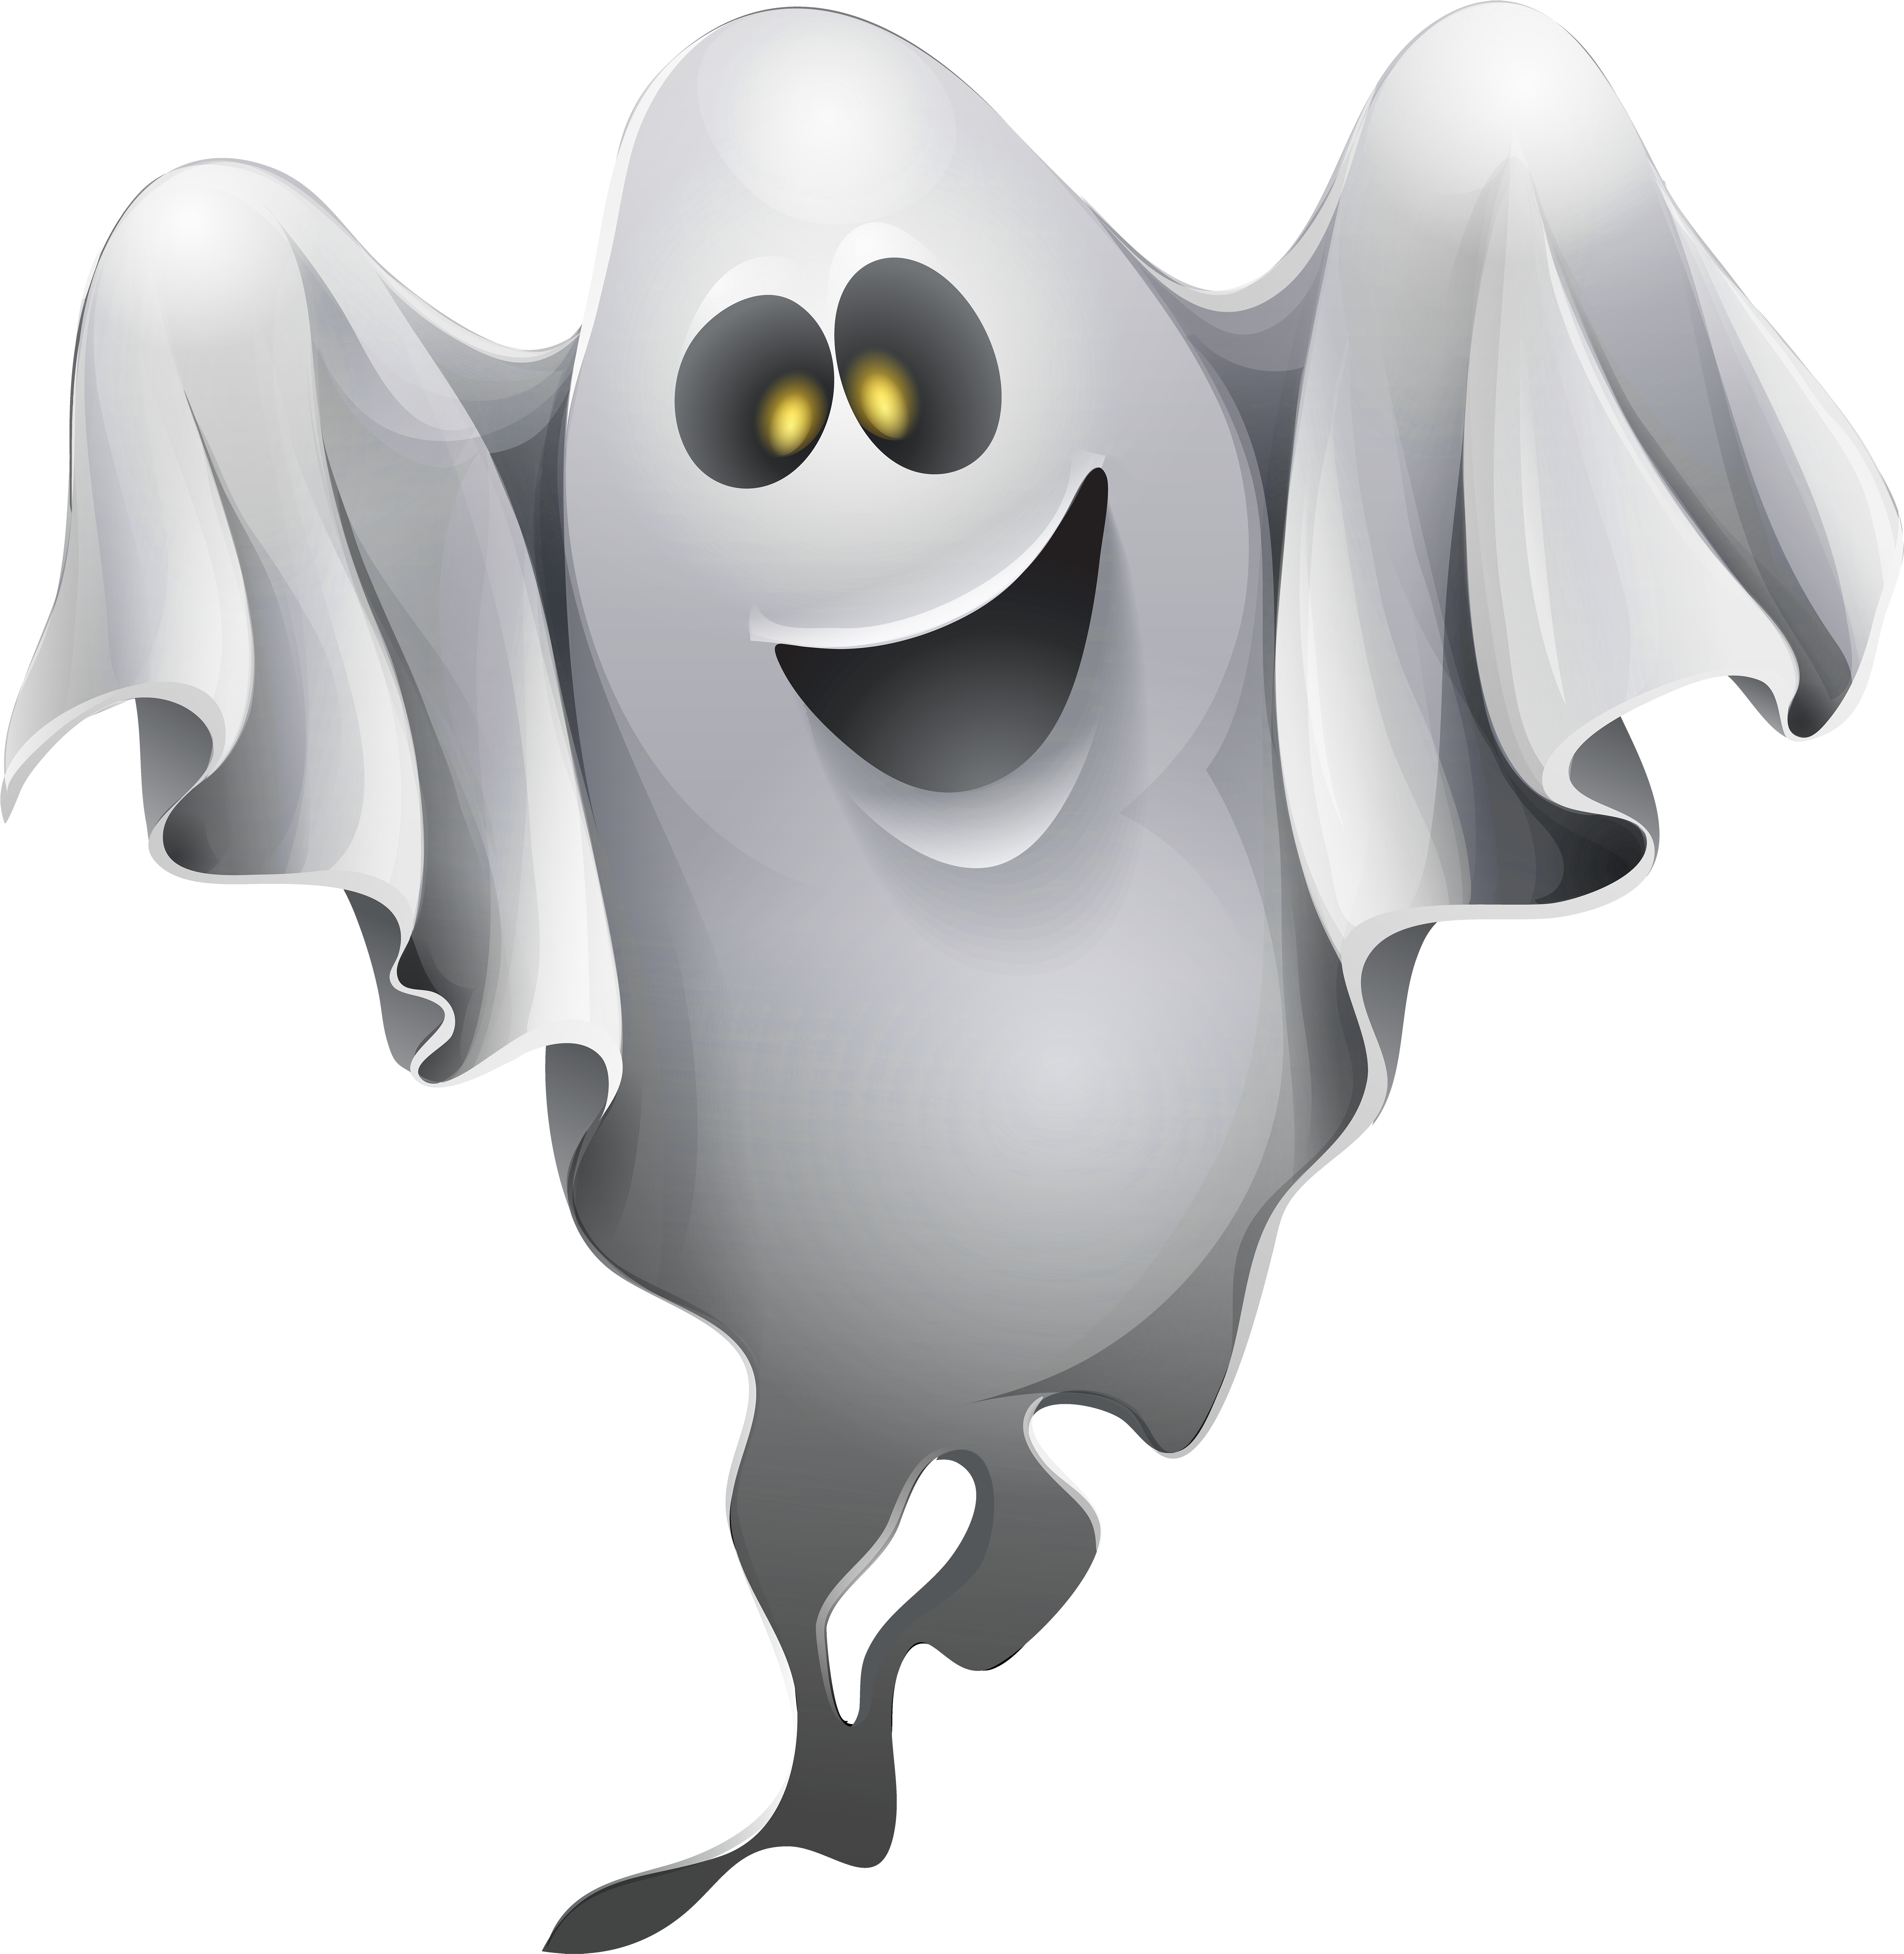 Flying ghost clipart black and white transparent svg free download HD Halloween Png Image Purepng Transparent Background - Transparent ... svg free download